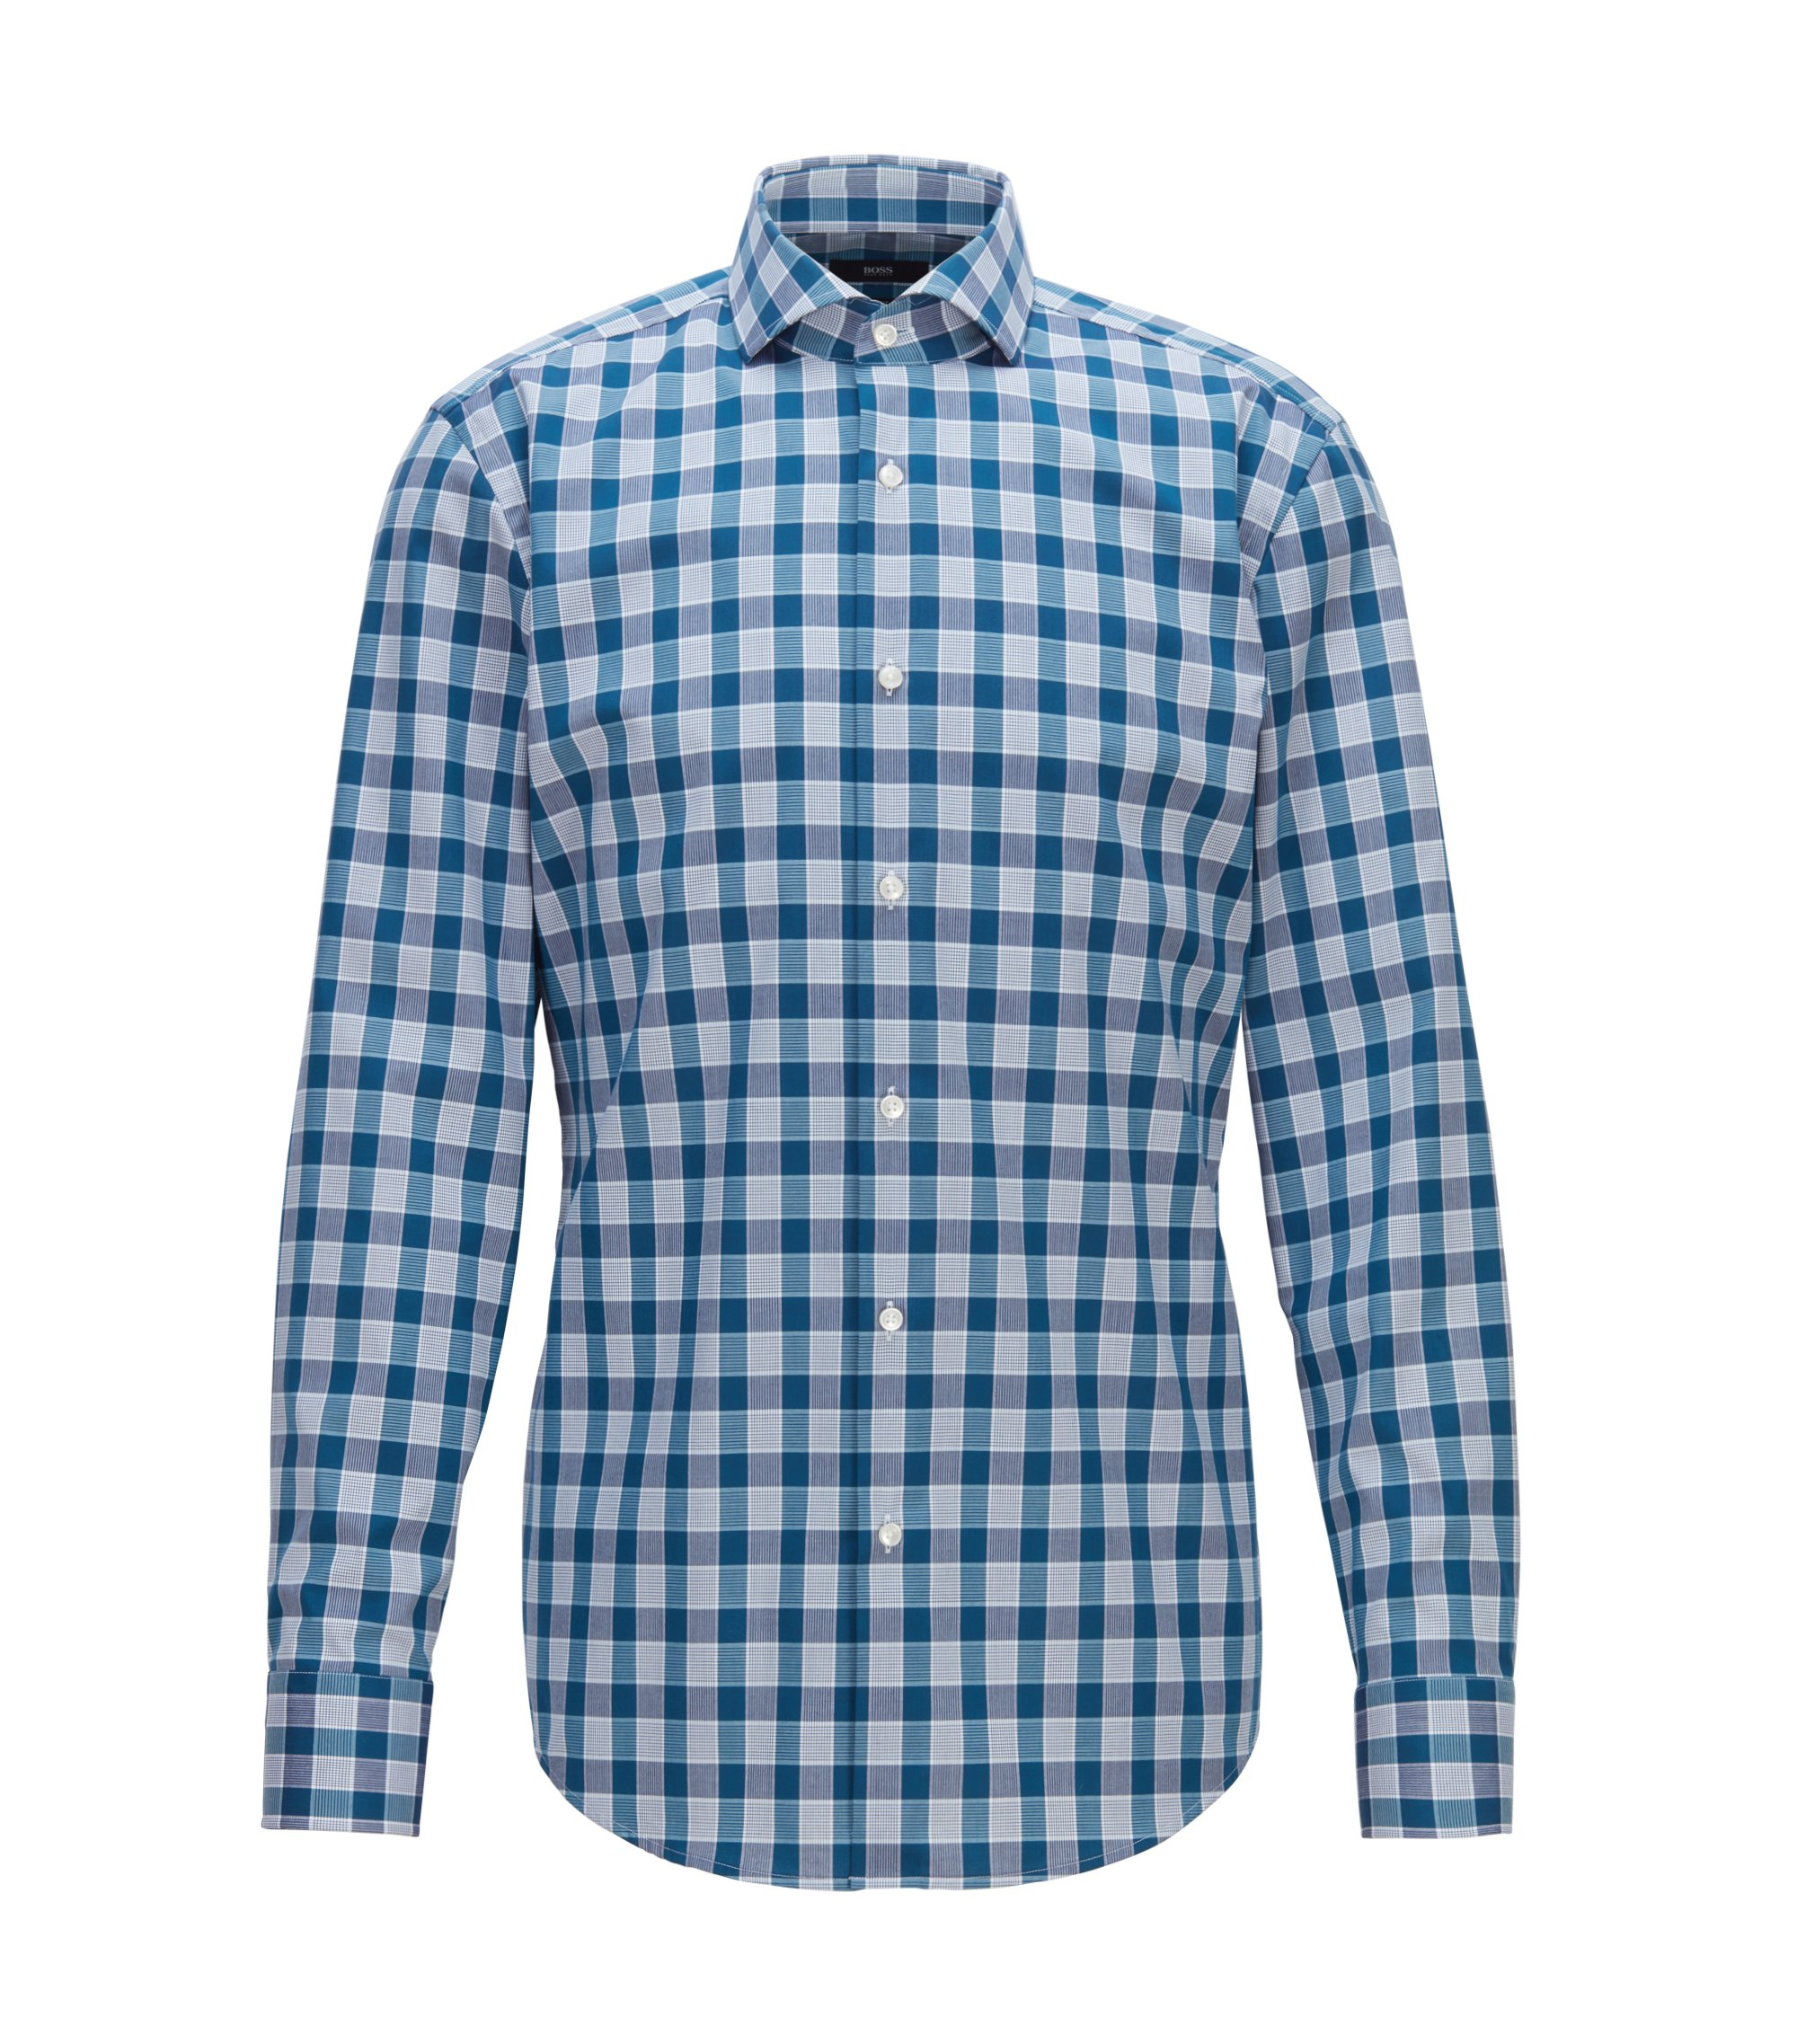 Camicia slim fit facile da stirare in cotone a quadri Vichy, Turchese